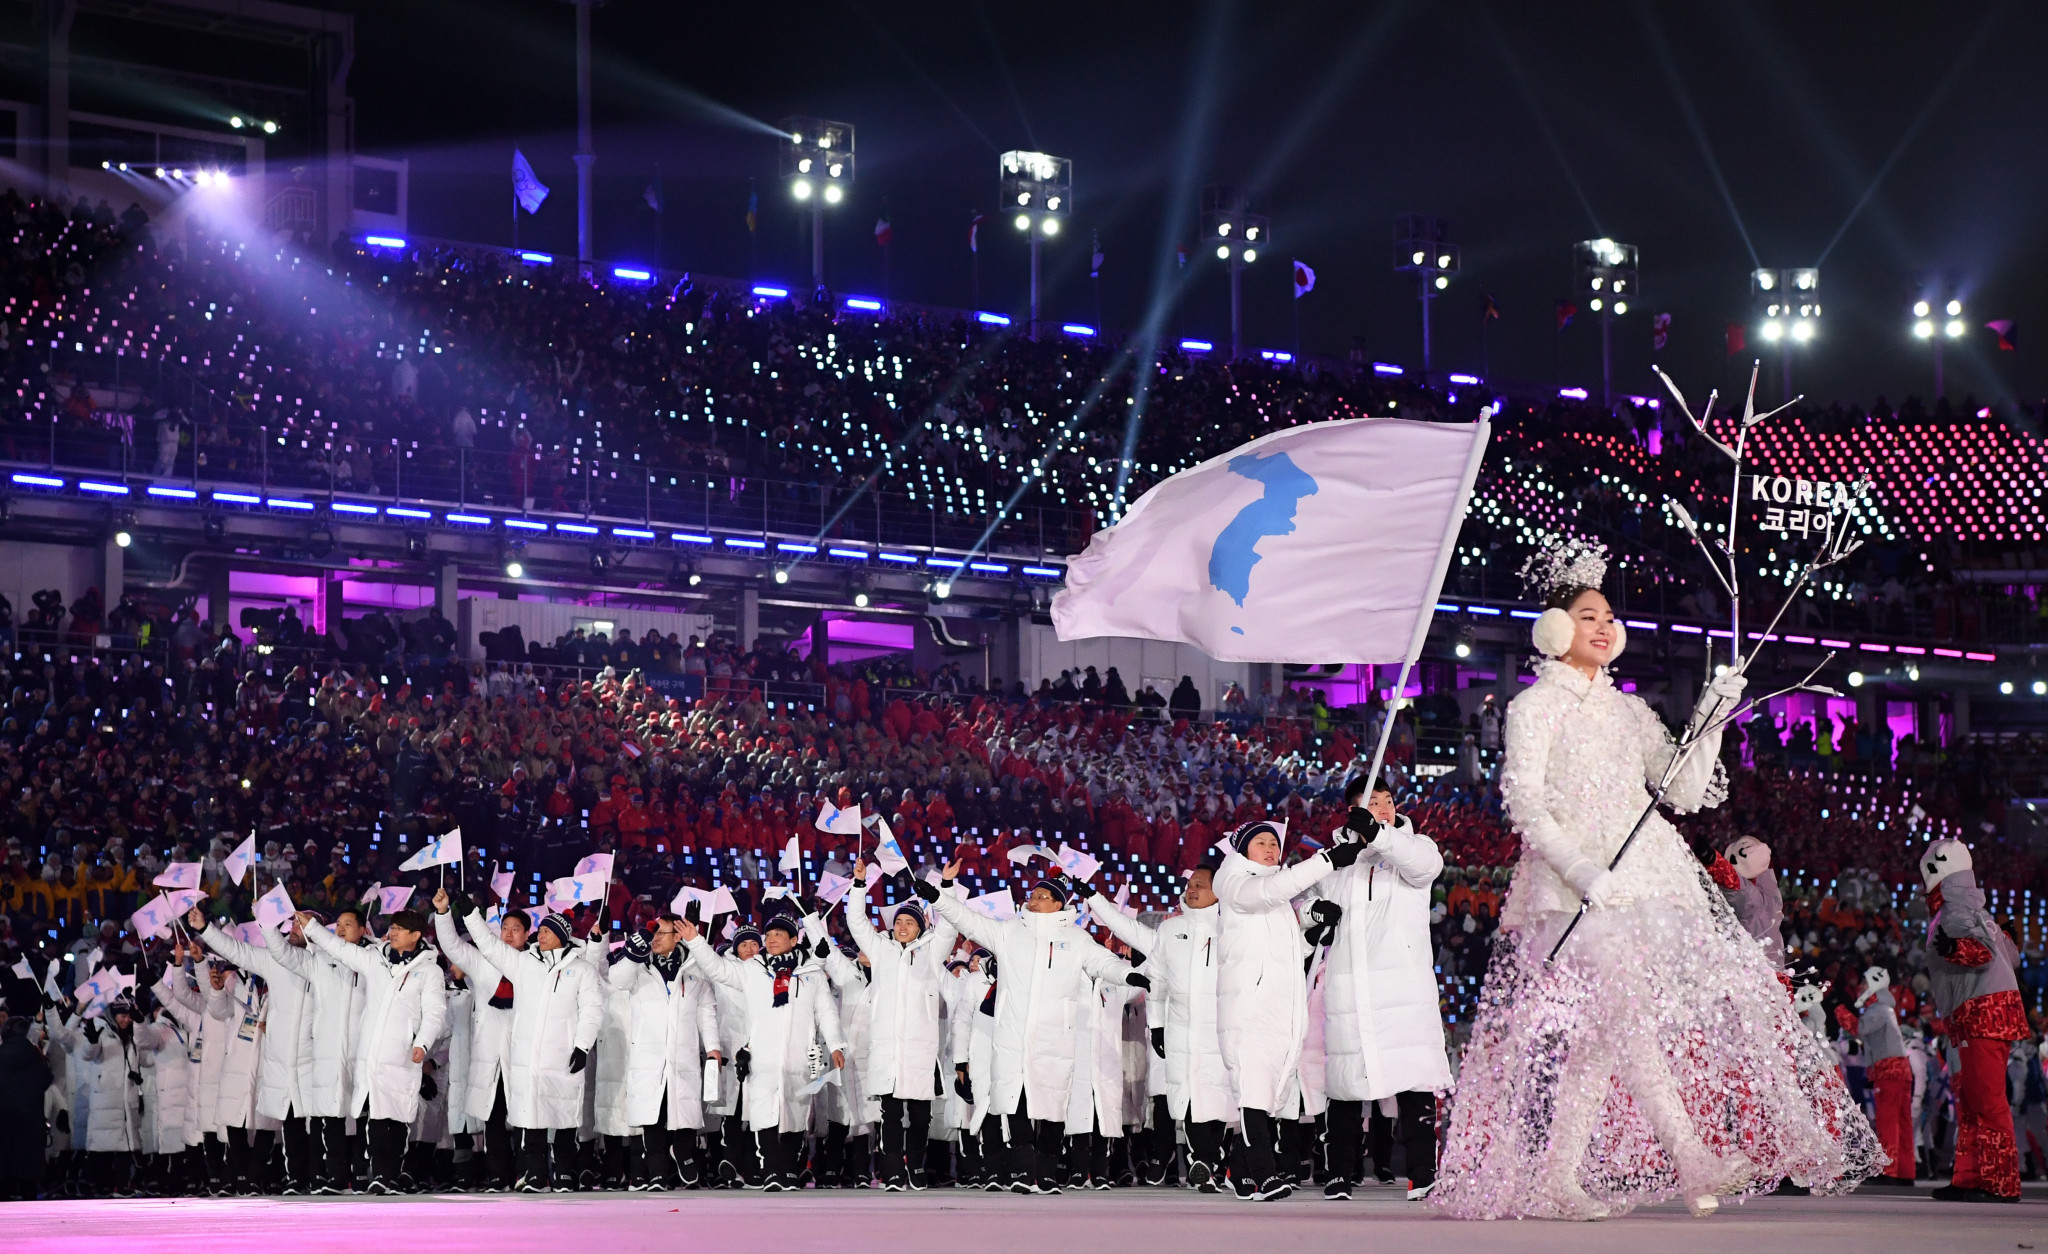 A unified Korean delegation walked at the Pyeongchang 2018 Opening Ceremony ©Getty Images